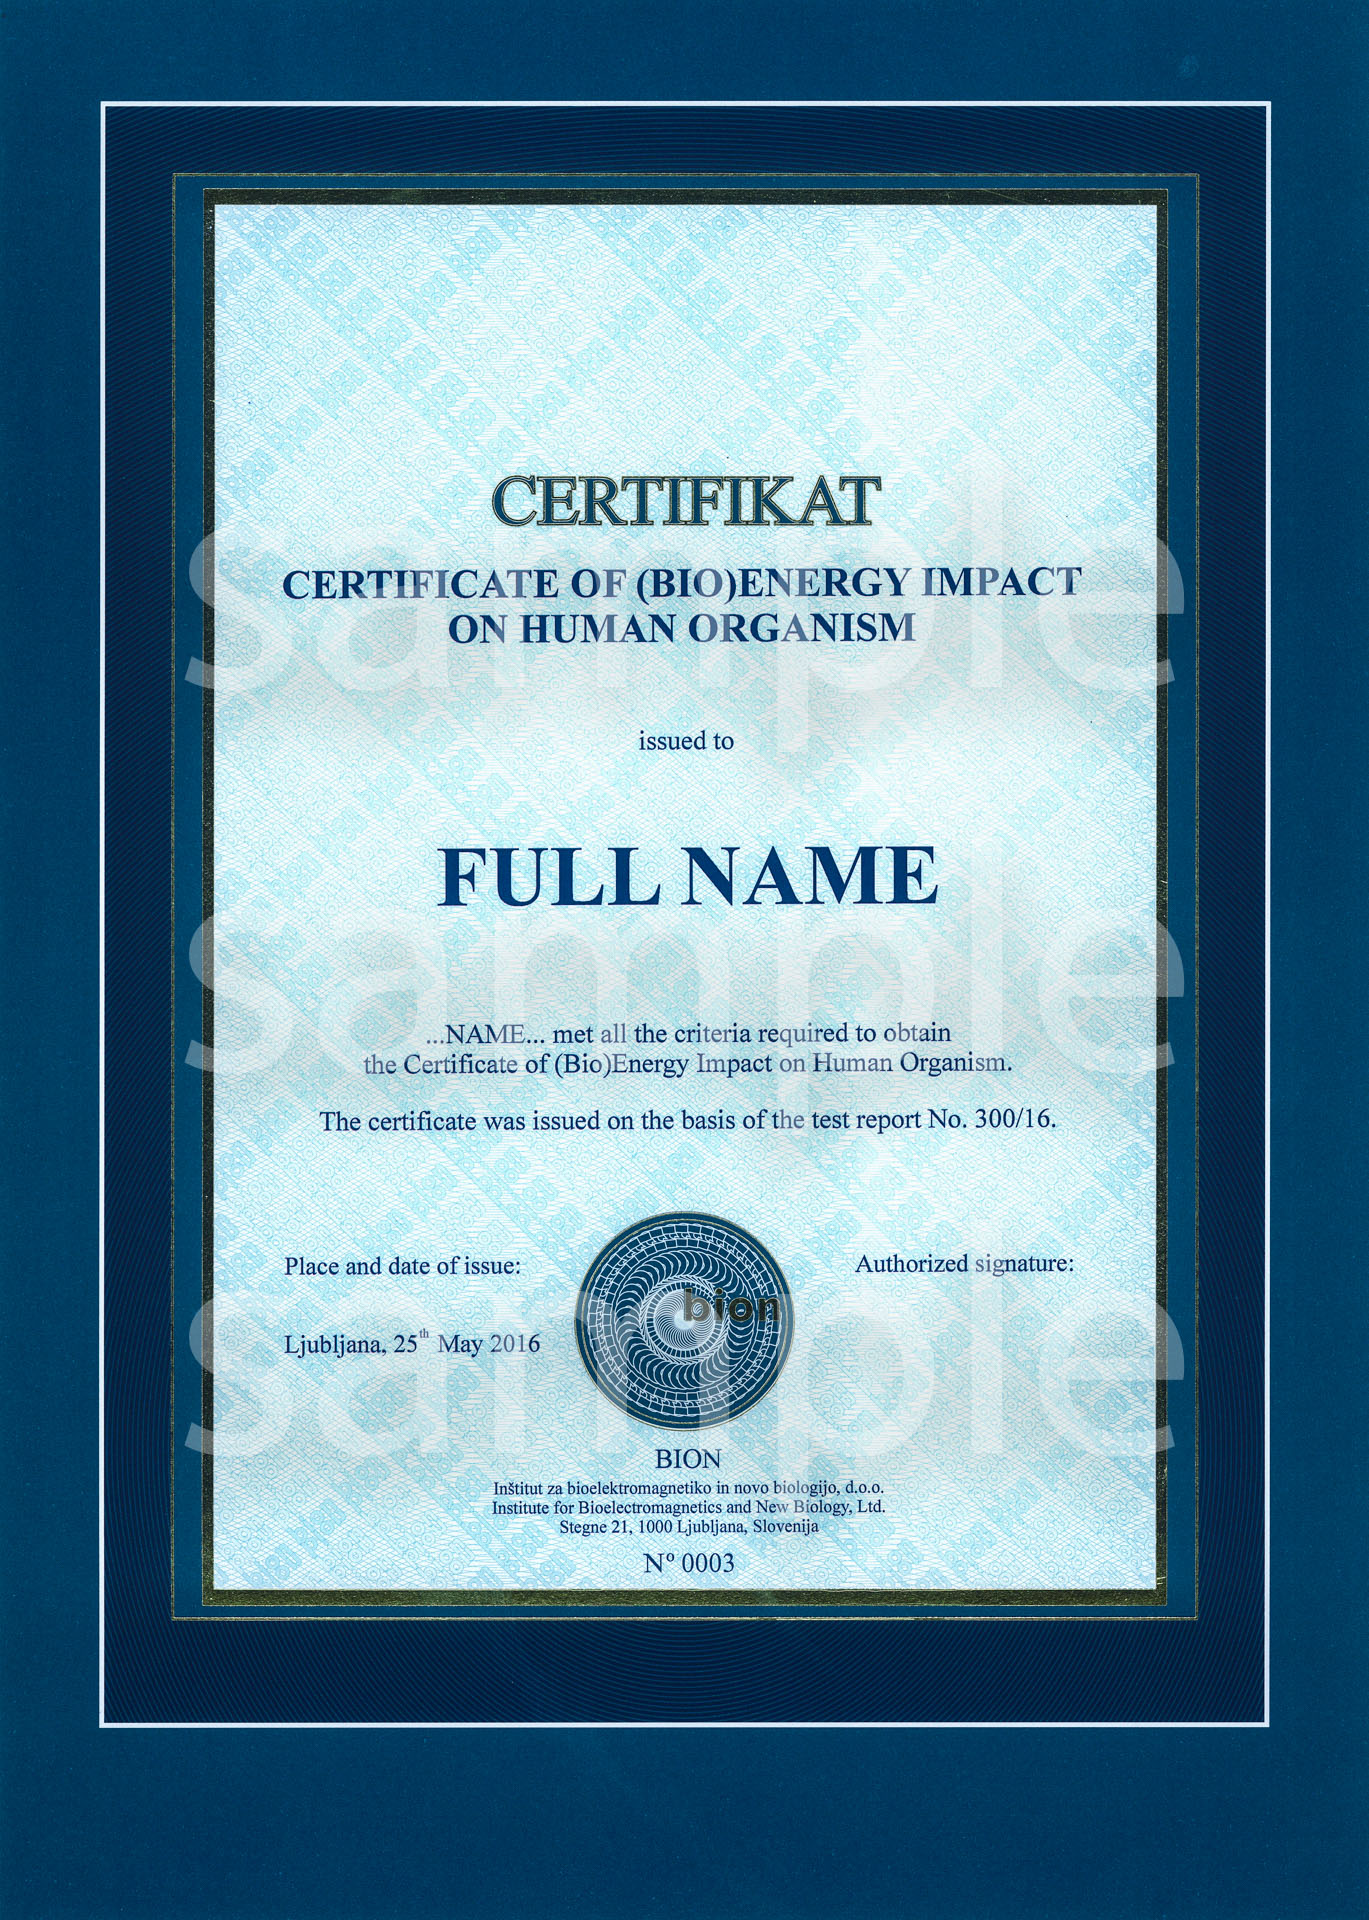 bion_institute-certifikat_of_bioenergy_impact